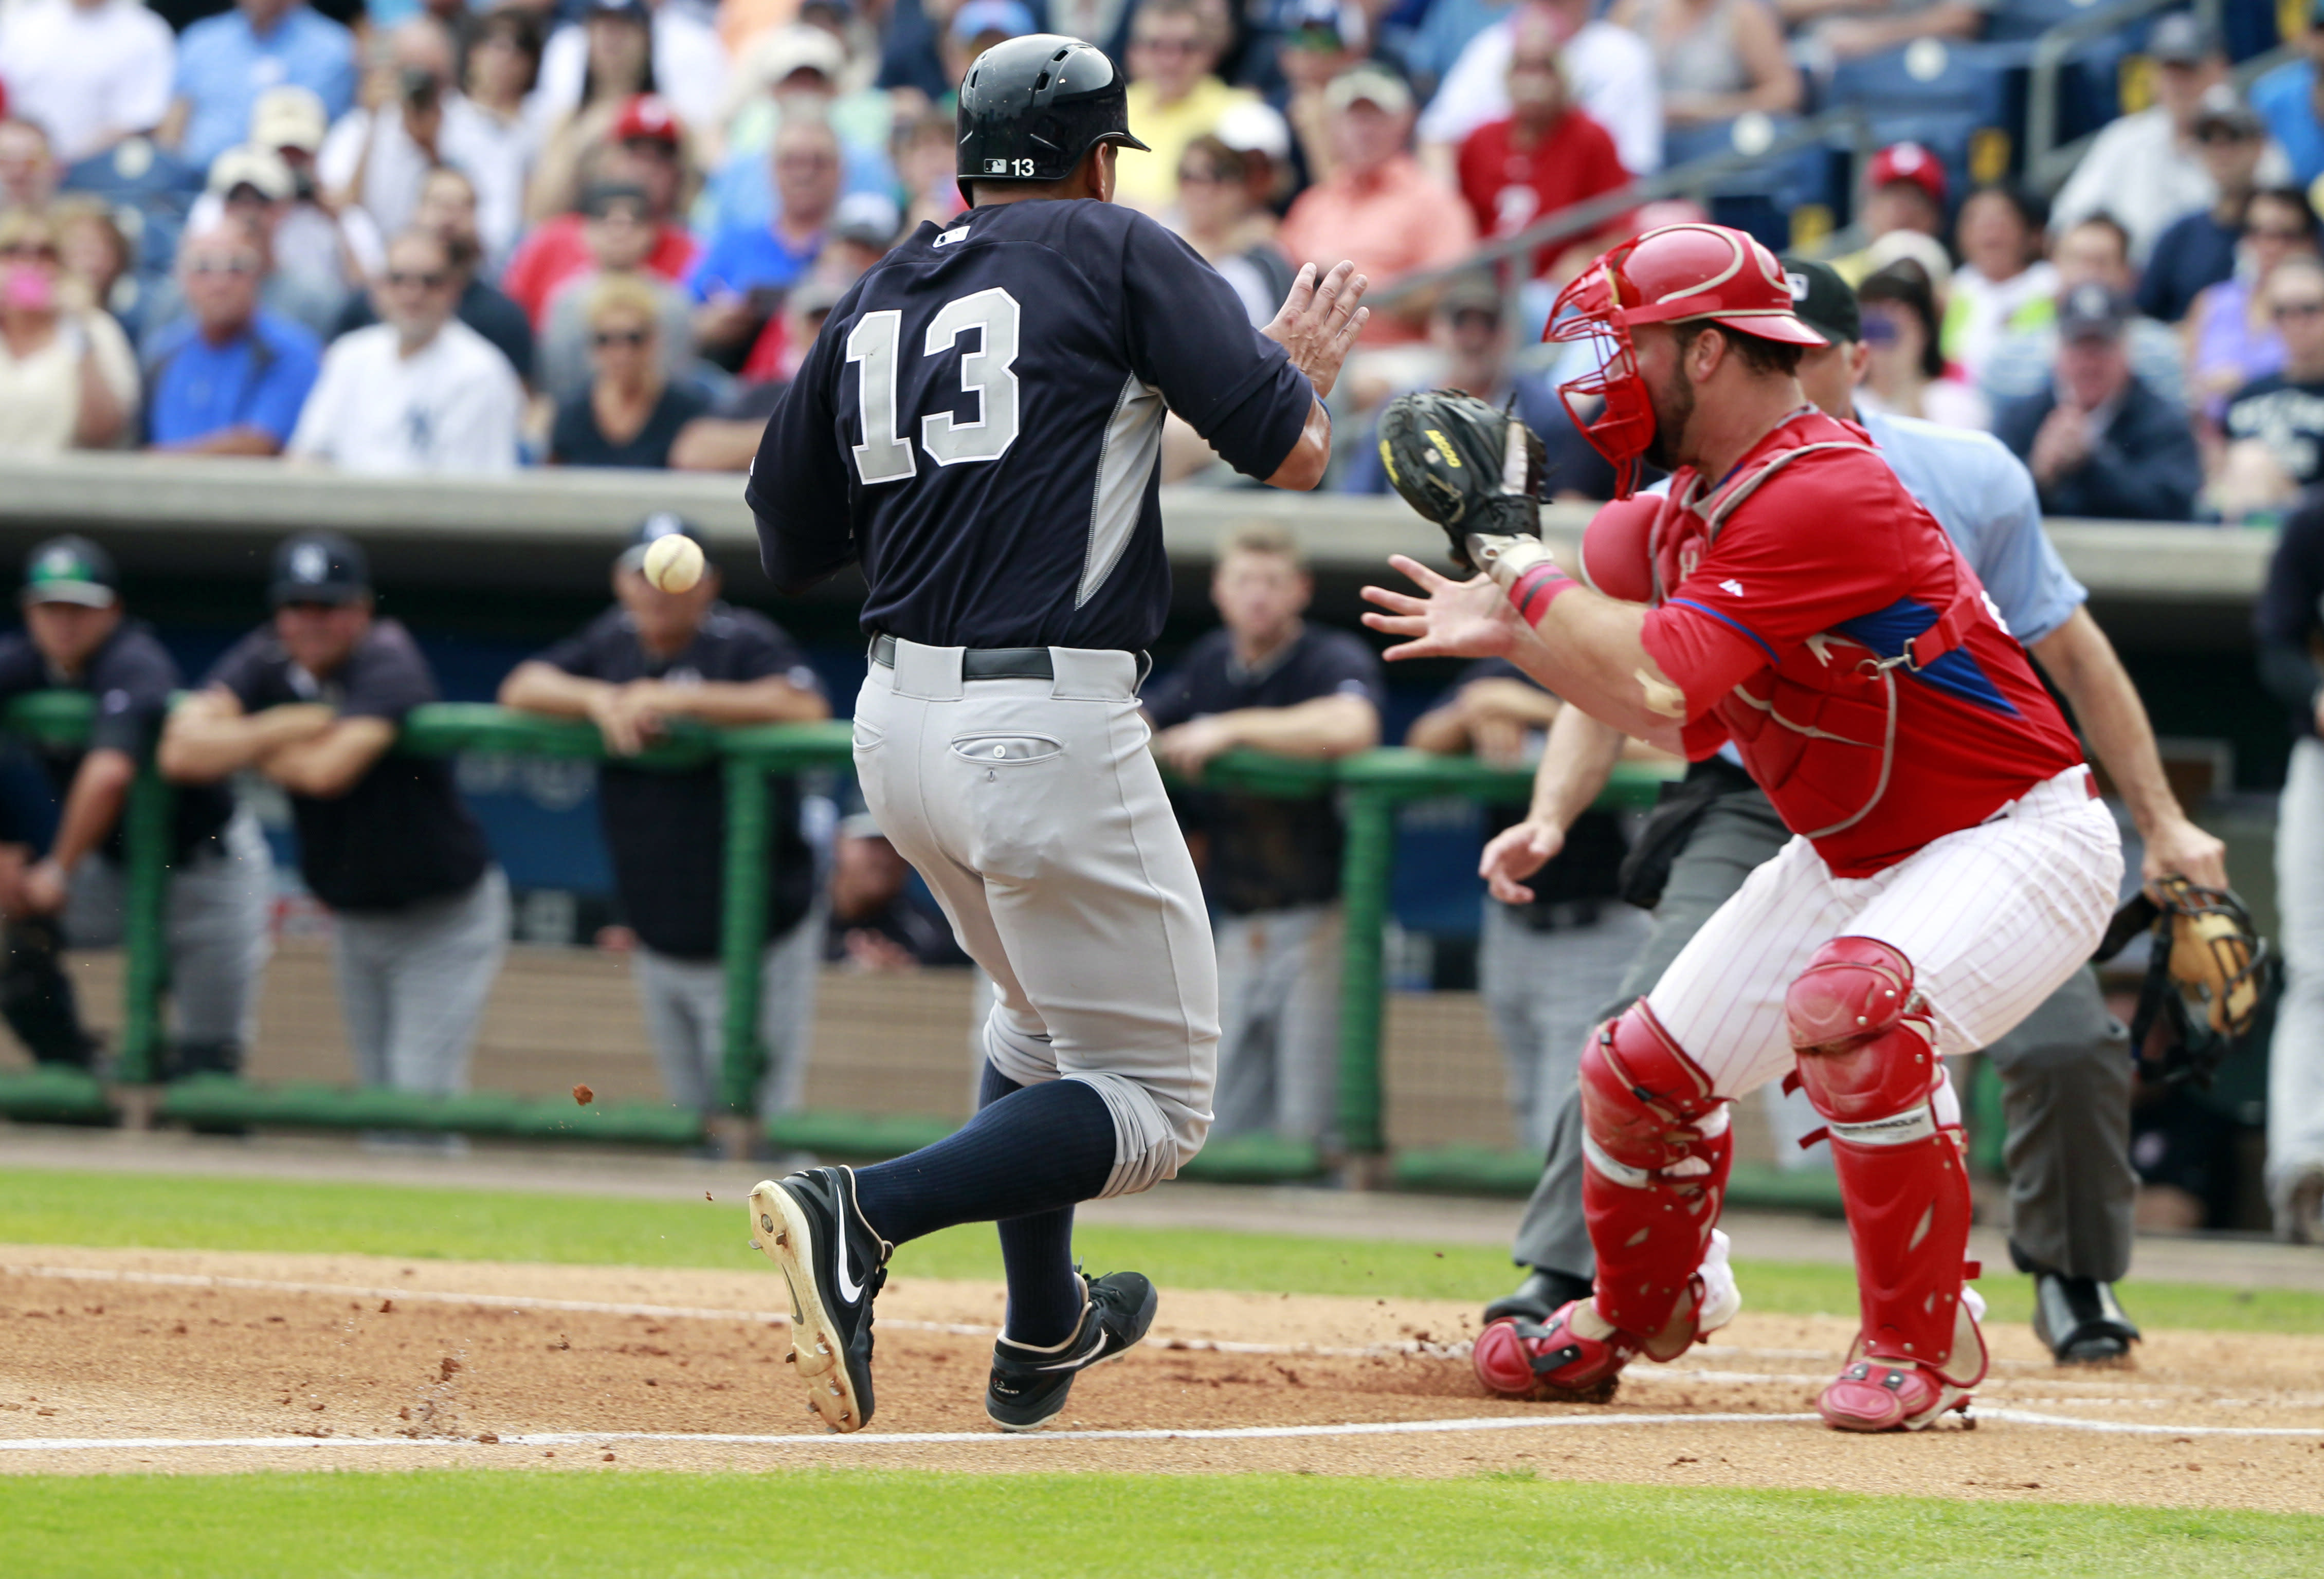 A-Rod challenges Jeff Francoeur's arm, loses by notable margin